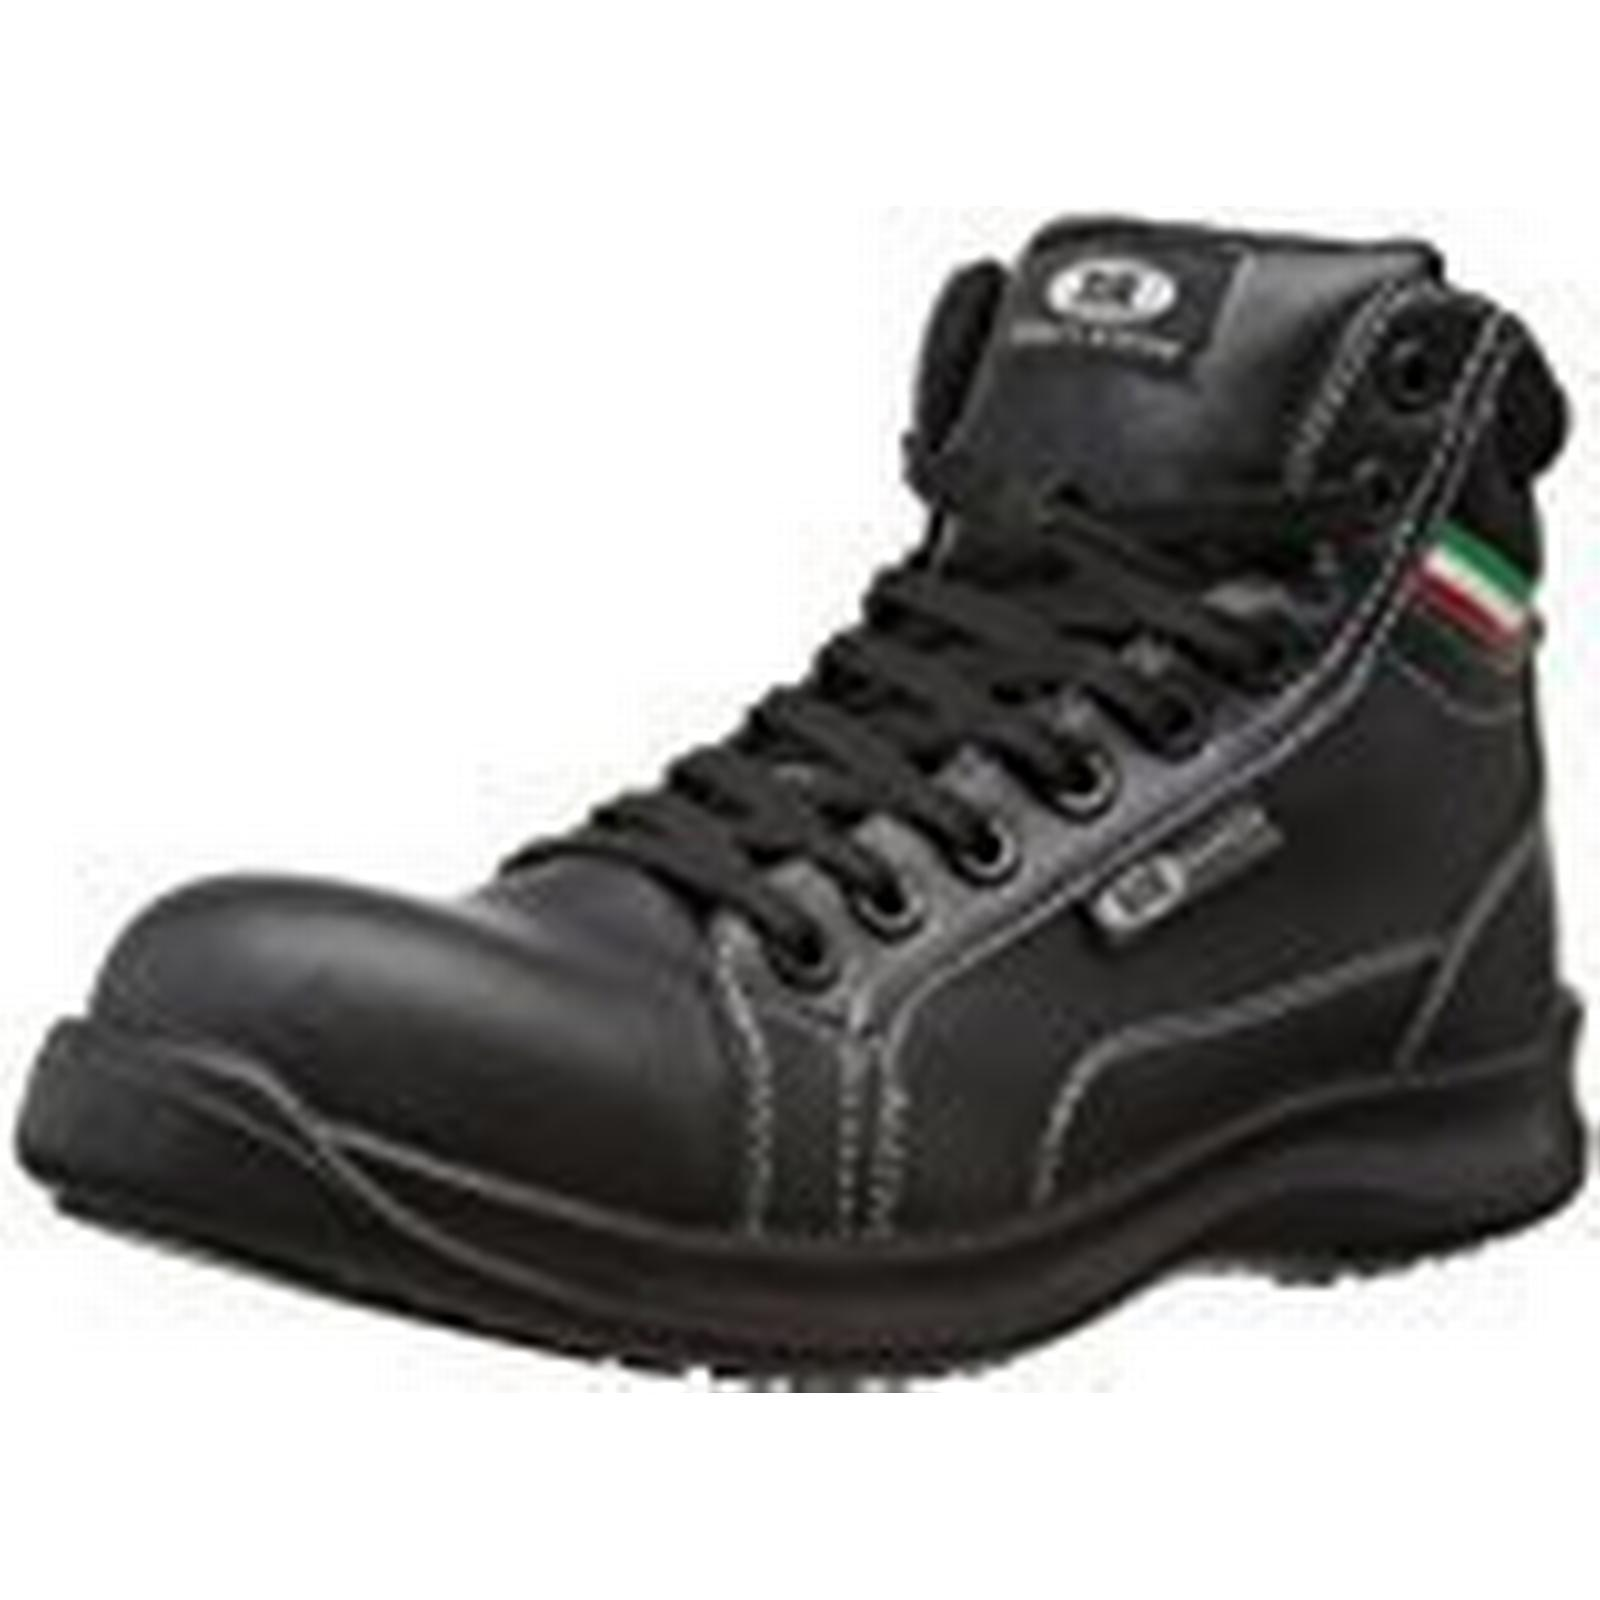 SIR Safety Unisex-Adult 26089 Fobia High Safety Boots 26089 Unisex-Adult Black 9 UK, 43 EU 7c34a0